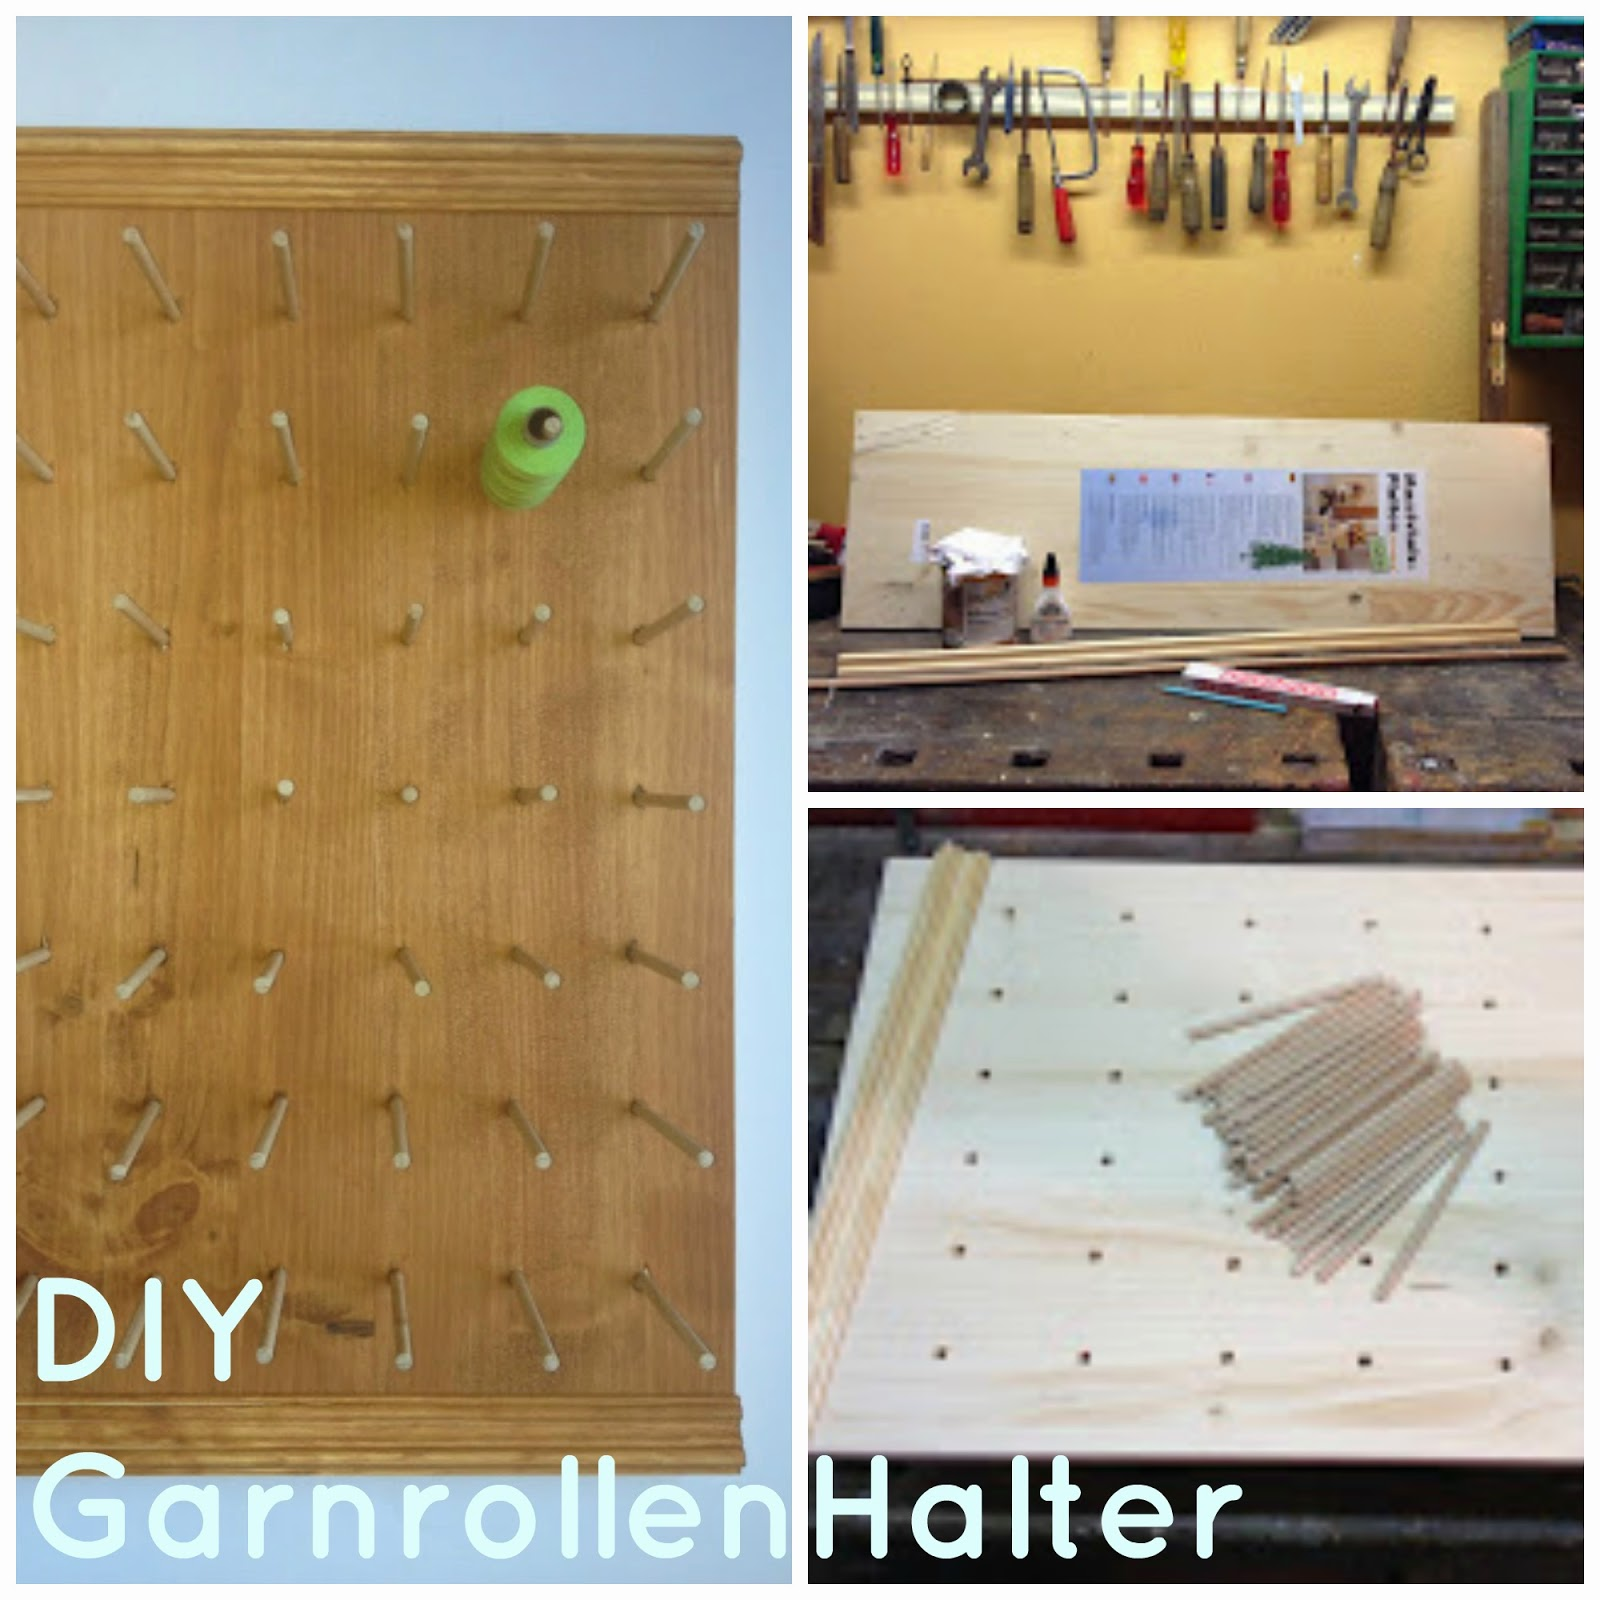 http://allie-and-me-design.blogspot.de/2013/07/diy-garnrollen-board-tutorial.html